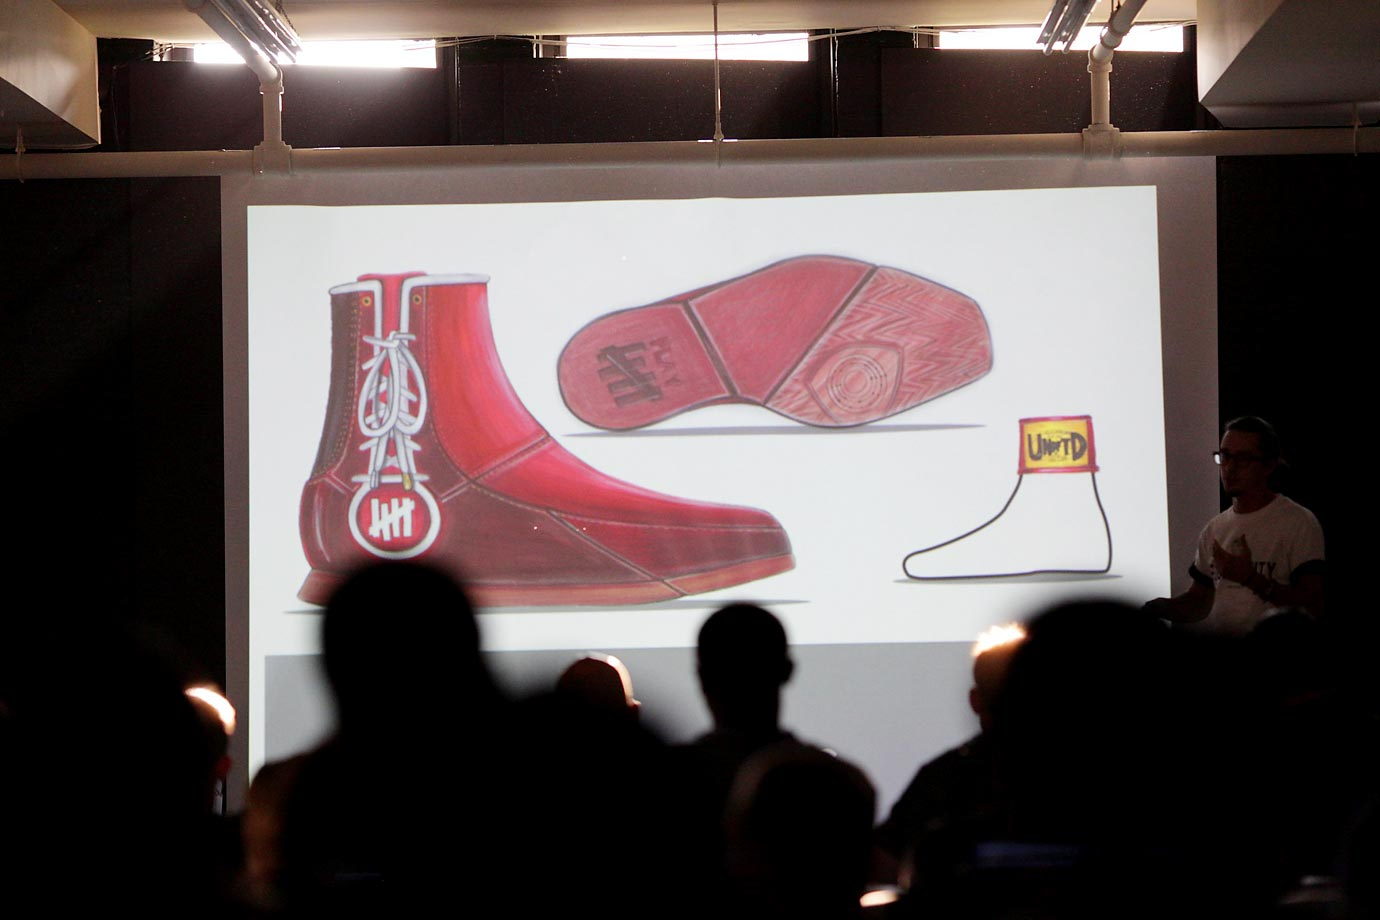 Inspired by Mike Tyson, Andrew Parks designed a boxing sneaker that featured patent red leather (like Everest gloves), a terrycloth interior (because Tyson walked out in the ring with a towel draped over his shoulders, not a silky robe) and one gold lace tip (for Tyson's gold teeth).